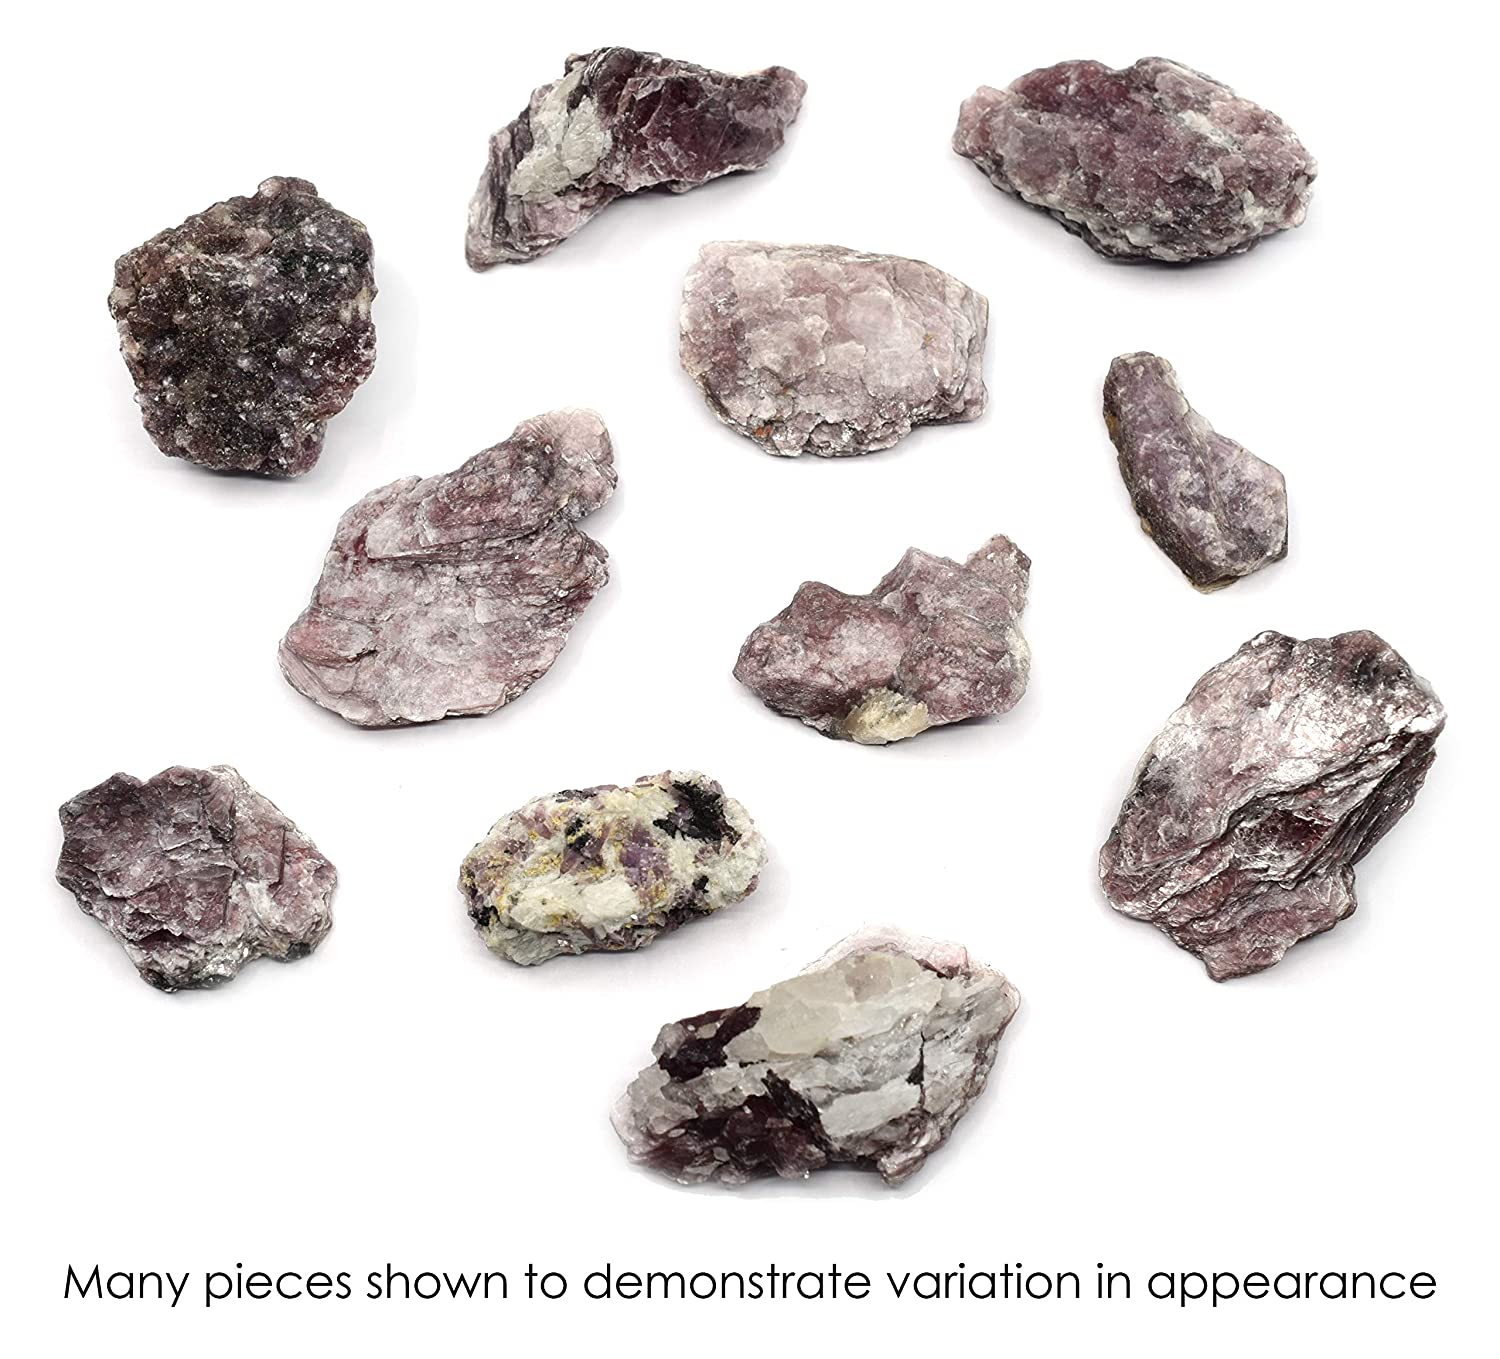 100/% Authentic Brazilian Purple Mica Raw Untreated Specimens 0.5-2oz 3 Pieces Purple Mica Natural The Artisan Mined Series by hBAR